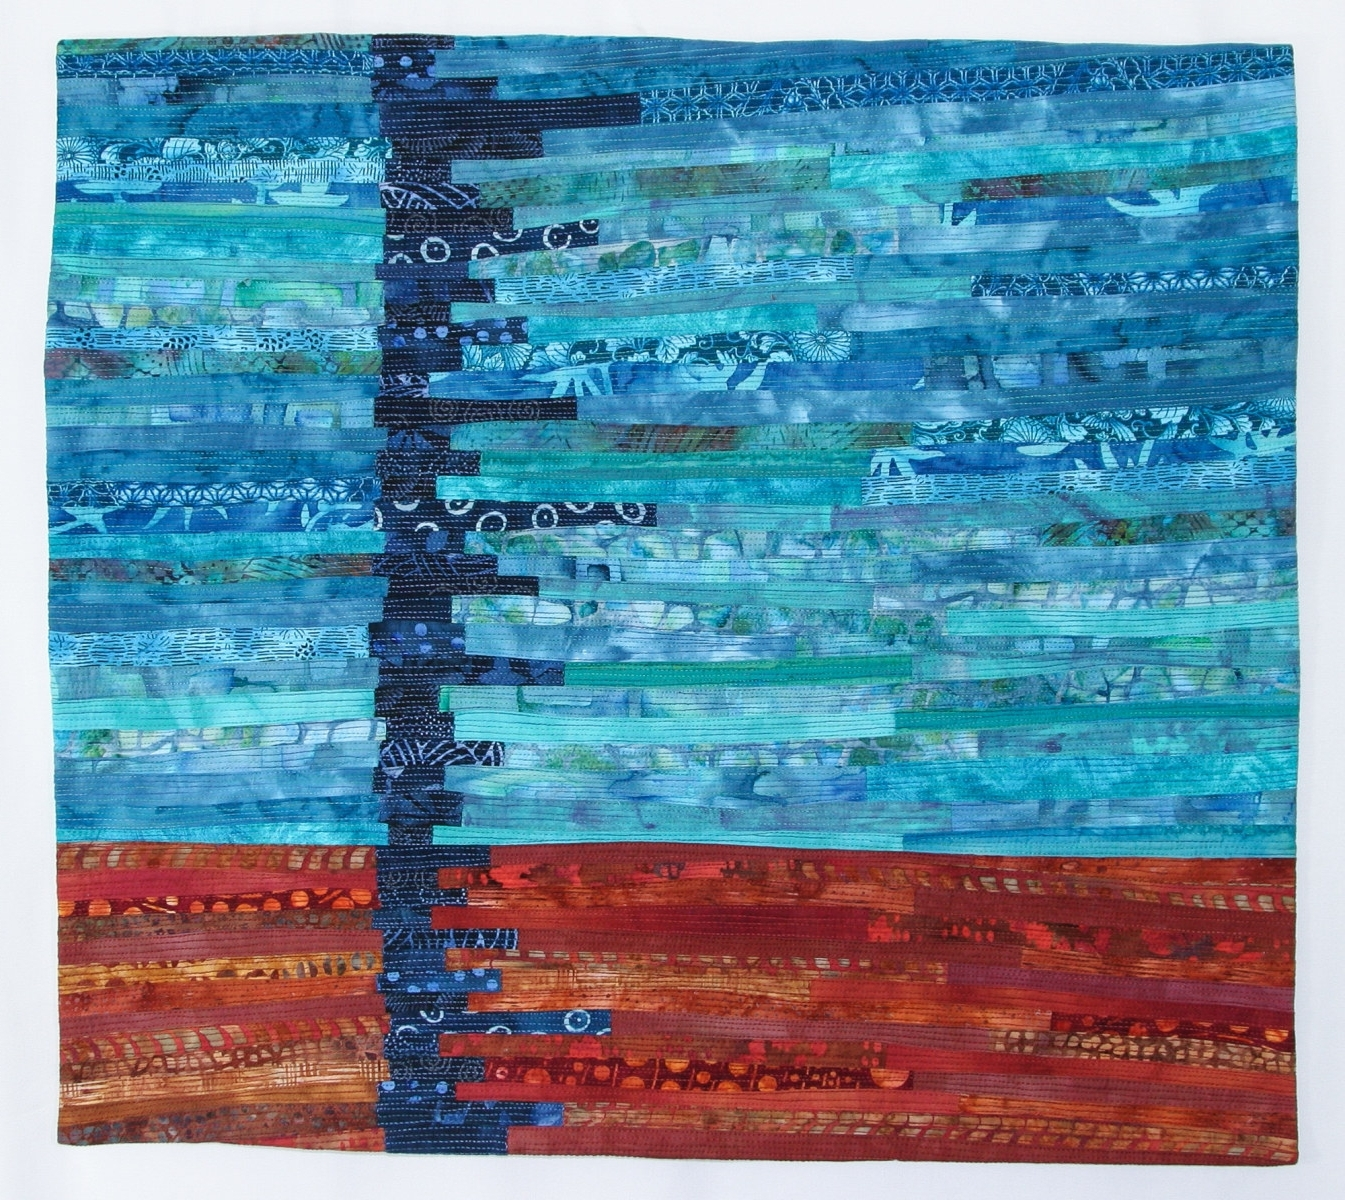 Tafa: The Textile And Fiber Art List (View 14 of 15)